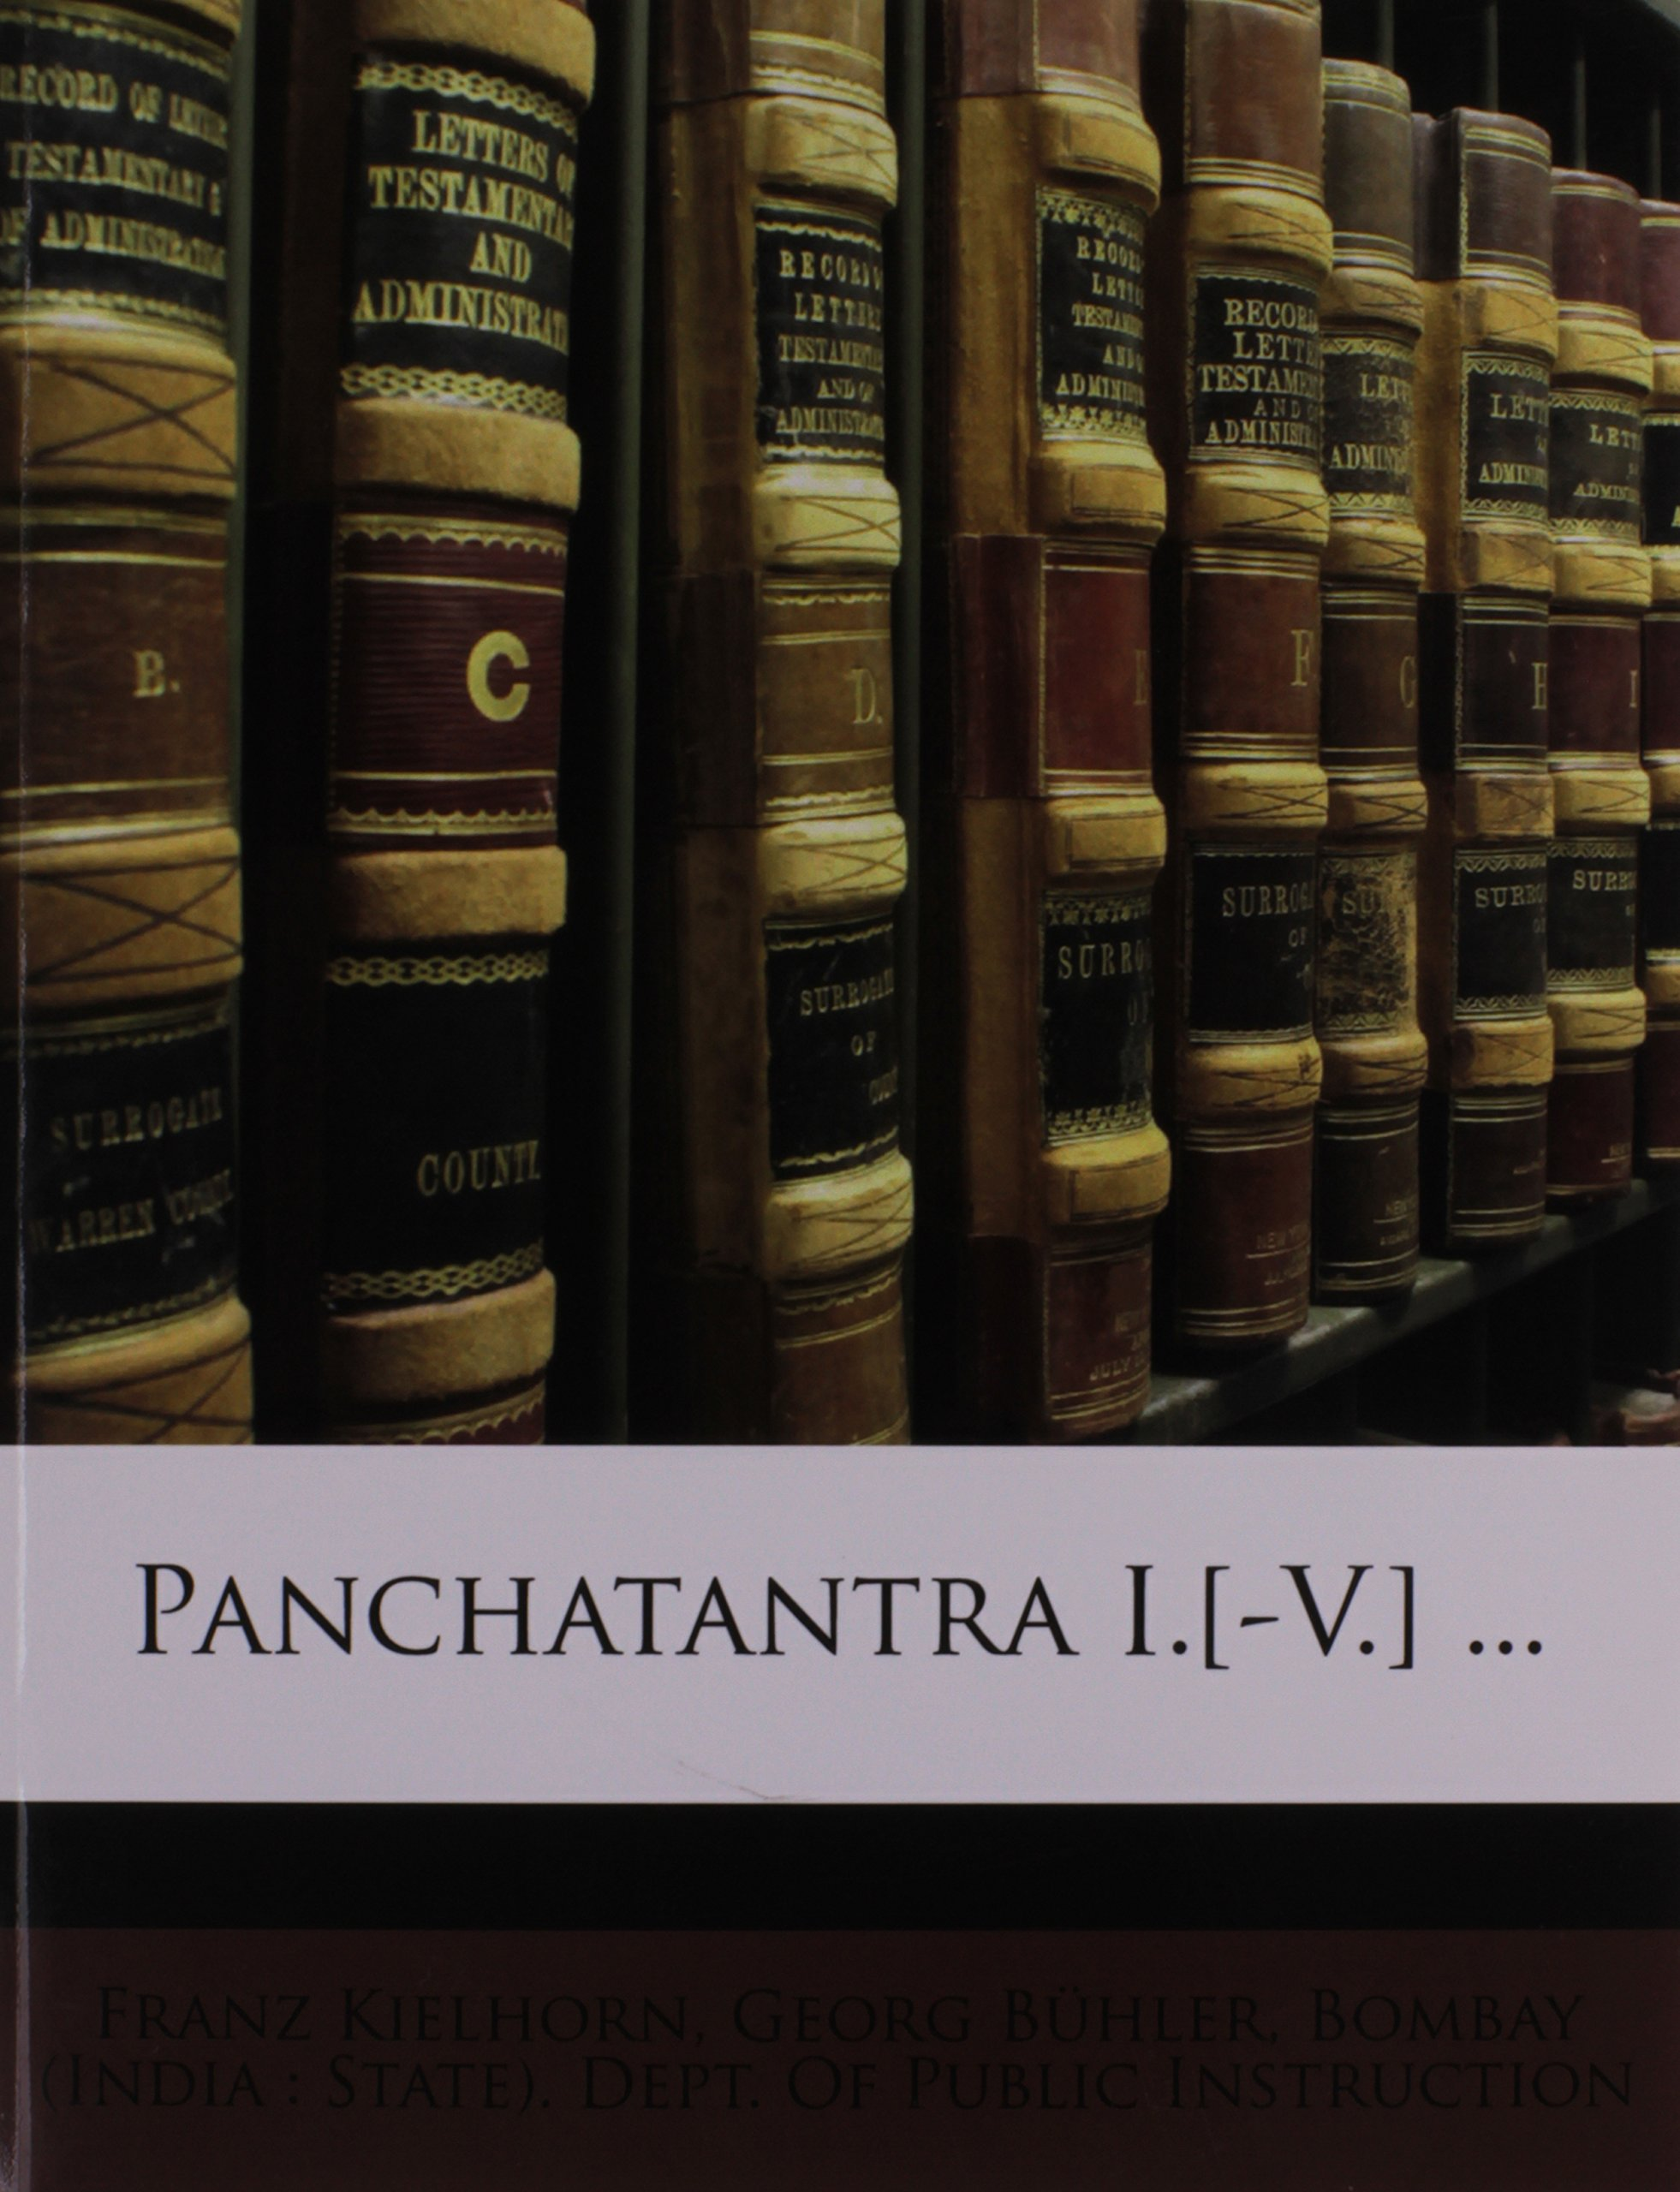 Read Online Pan American Petroleum Company, a Corporation, and Pan American Petroleum and Transport Company, a Corporation, Appellants and Cross-Appellees, vs. ... of America, Appellee and Cross-Appellant PDF ePub fb2 book